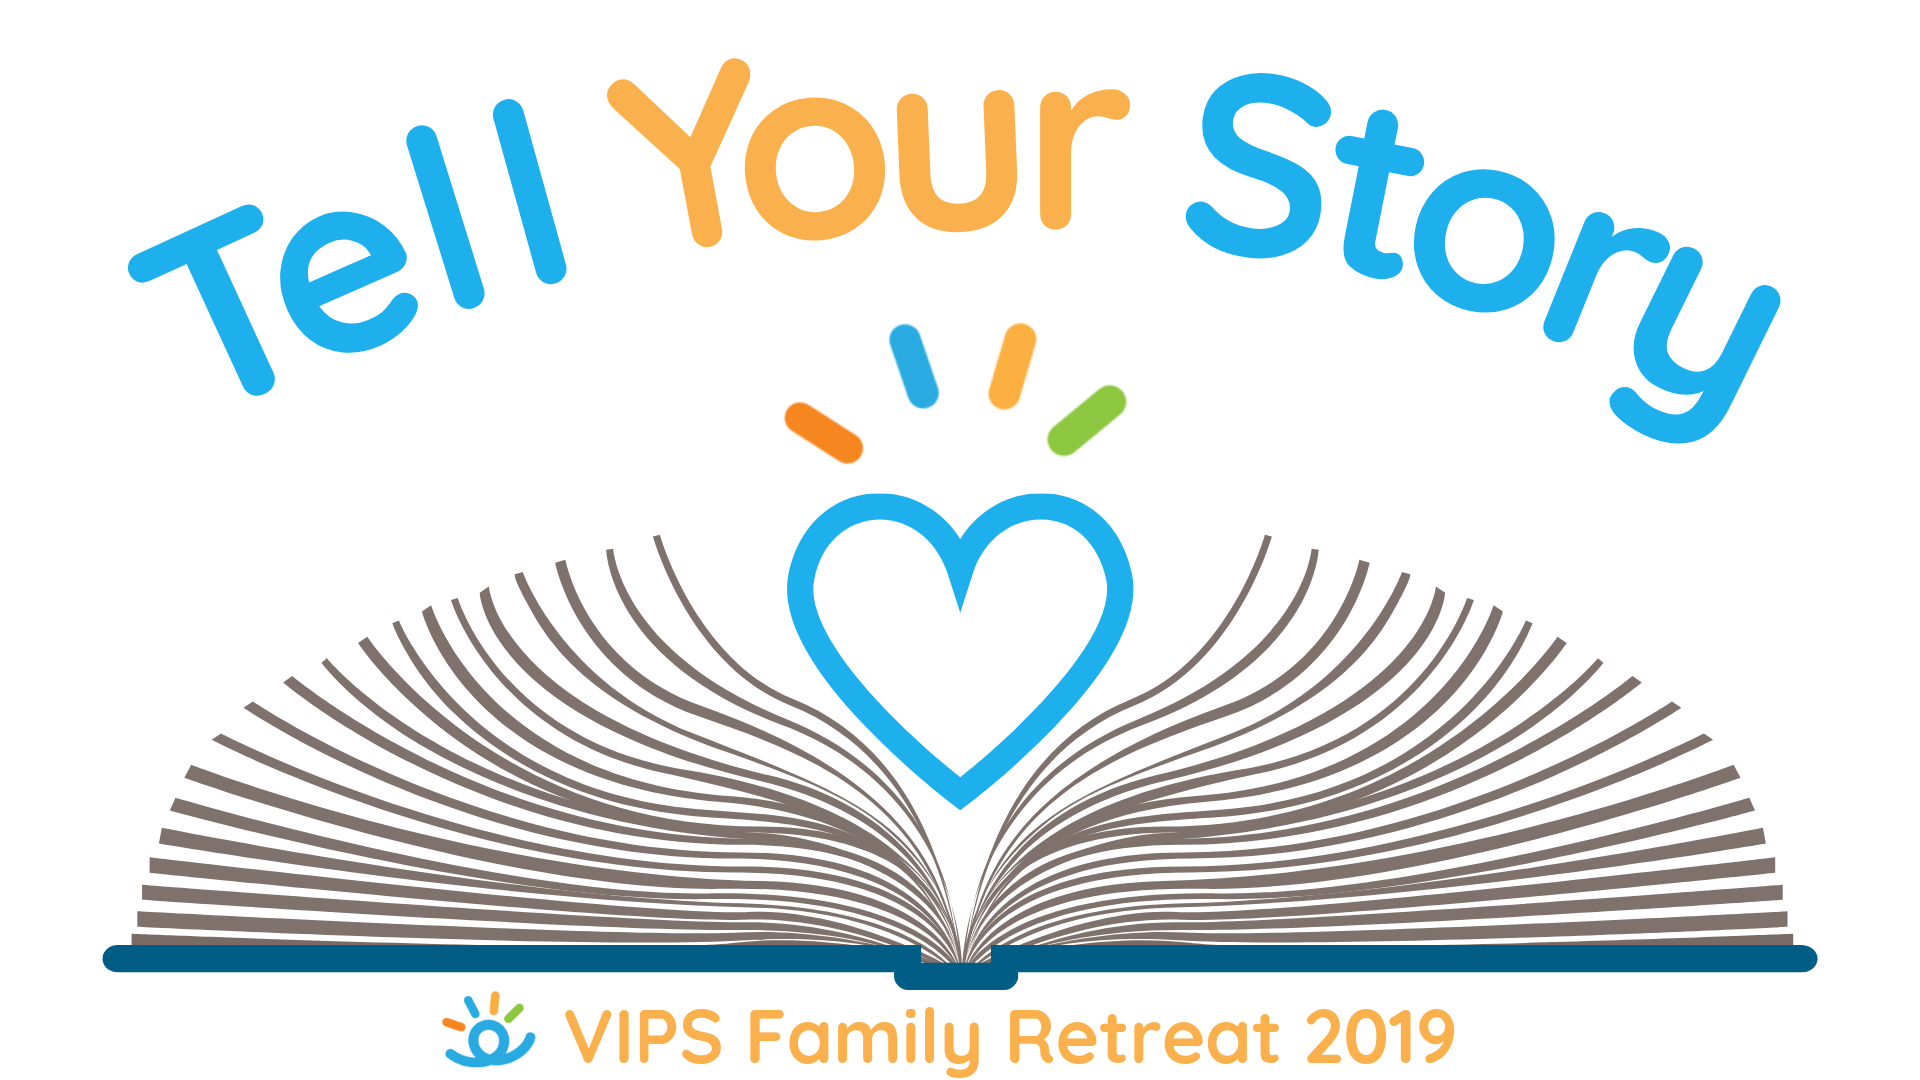 VIPS 2019 Family Retreat & Conference - Visually Impaired